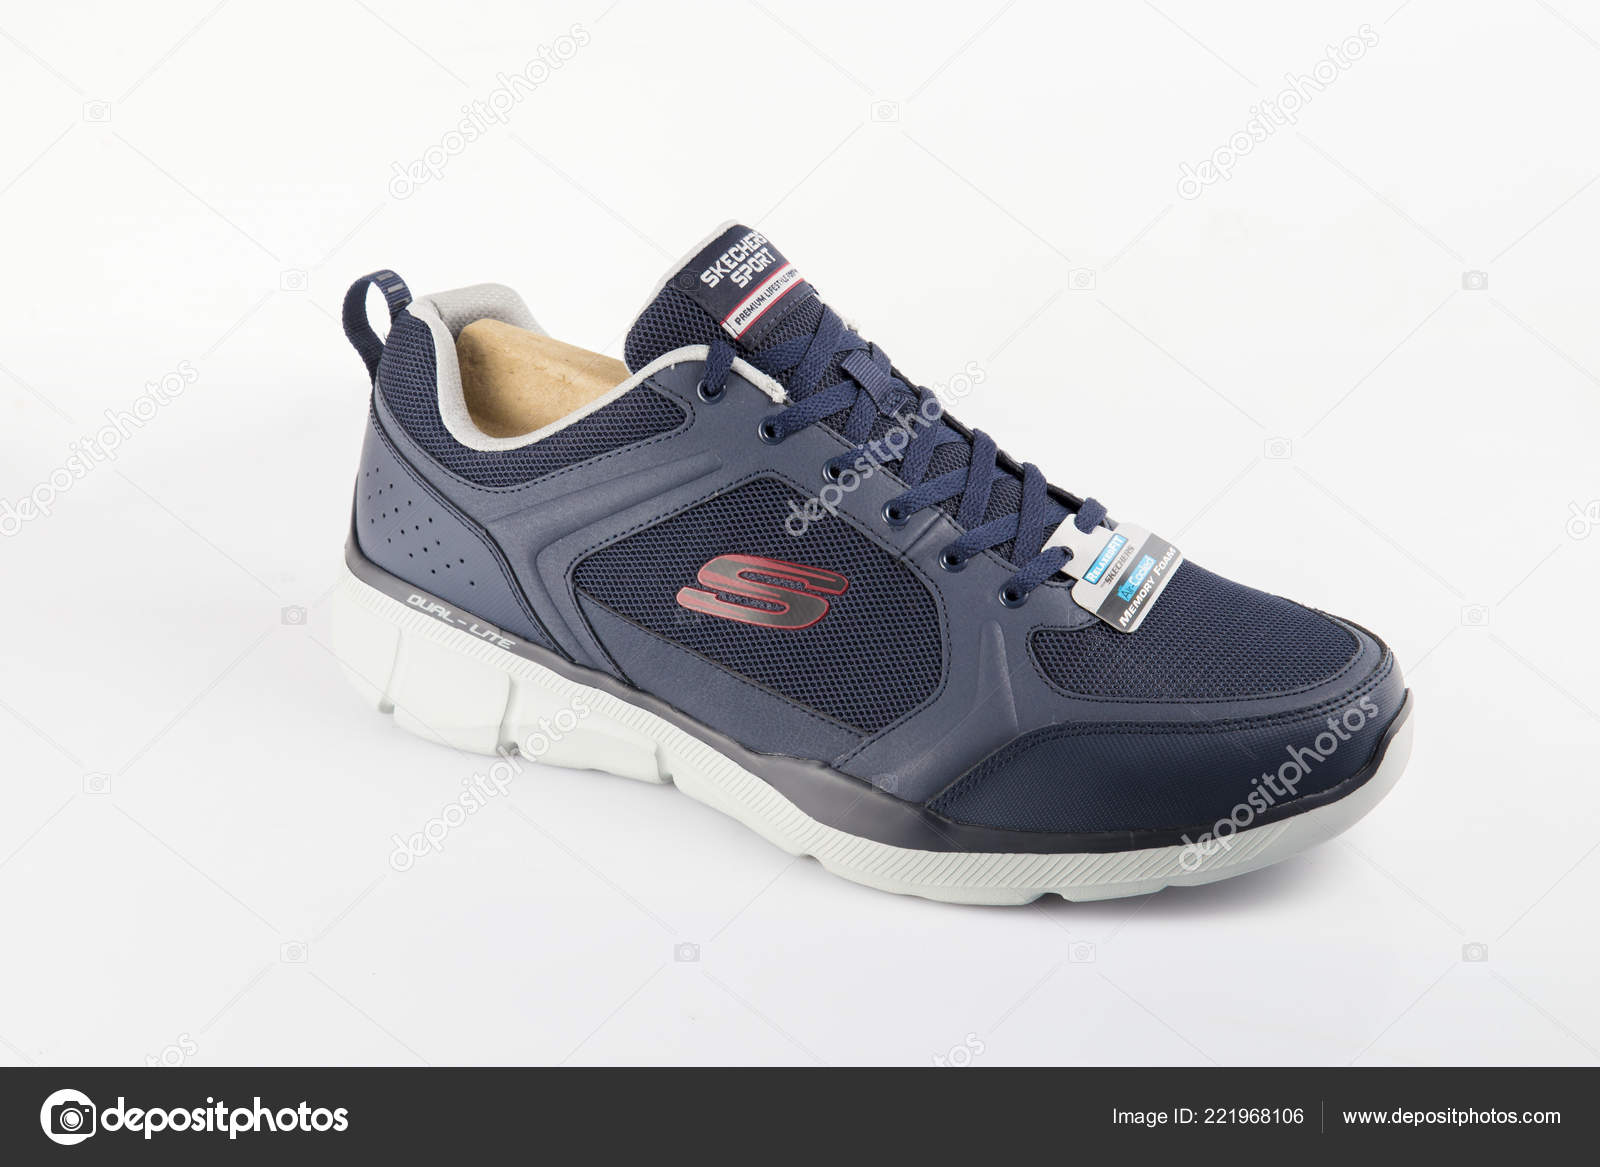 70cbd25c2ebb Afife Portugal October 2018 Skechers Running Boots Skechers Multinational  Company — Stock Photo